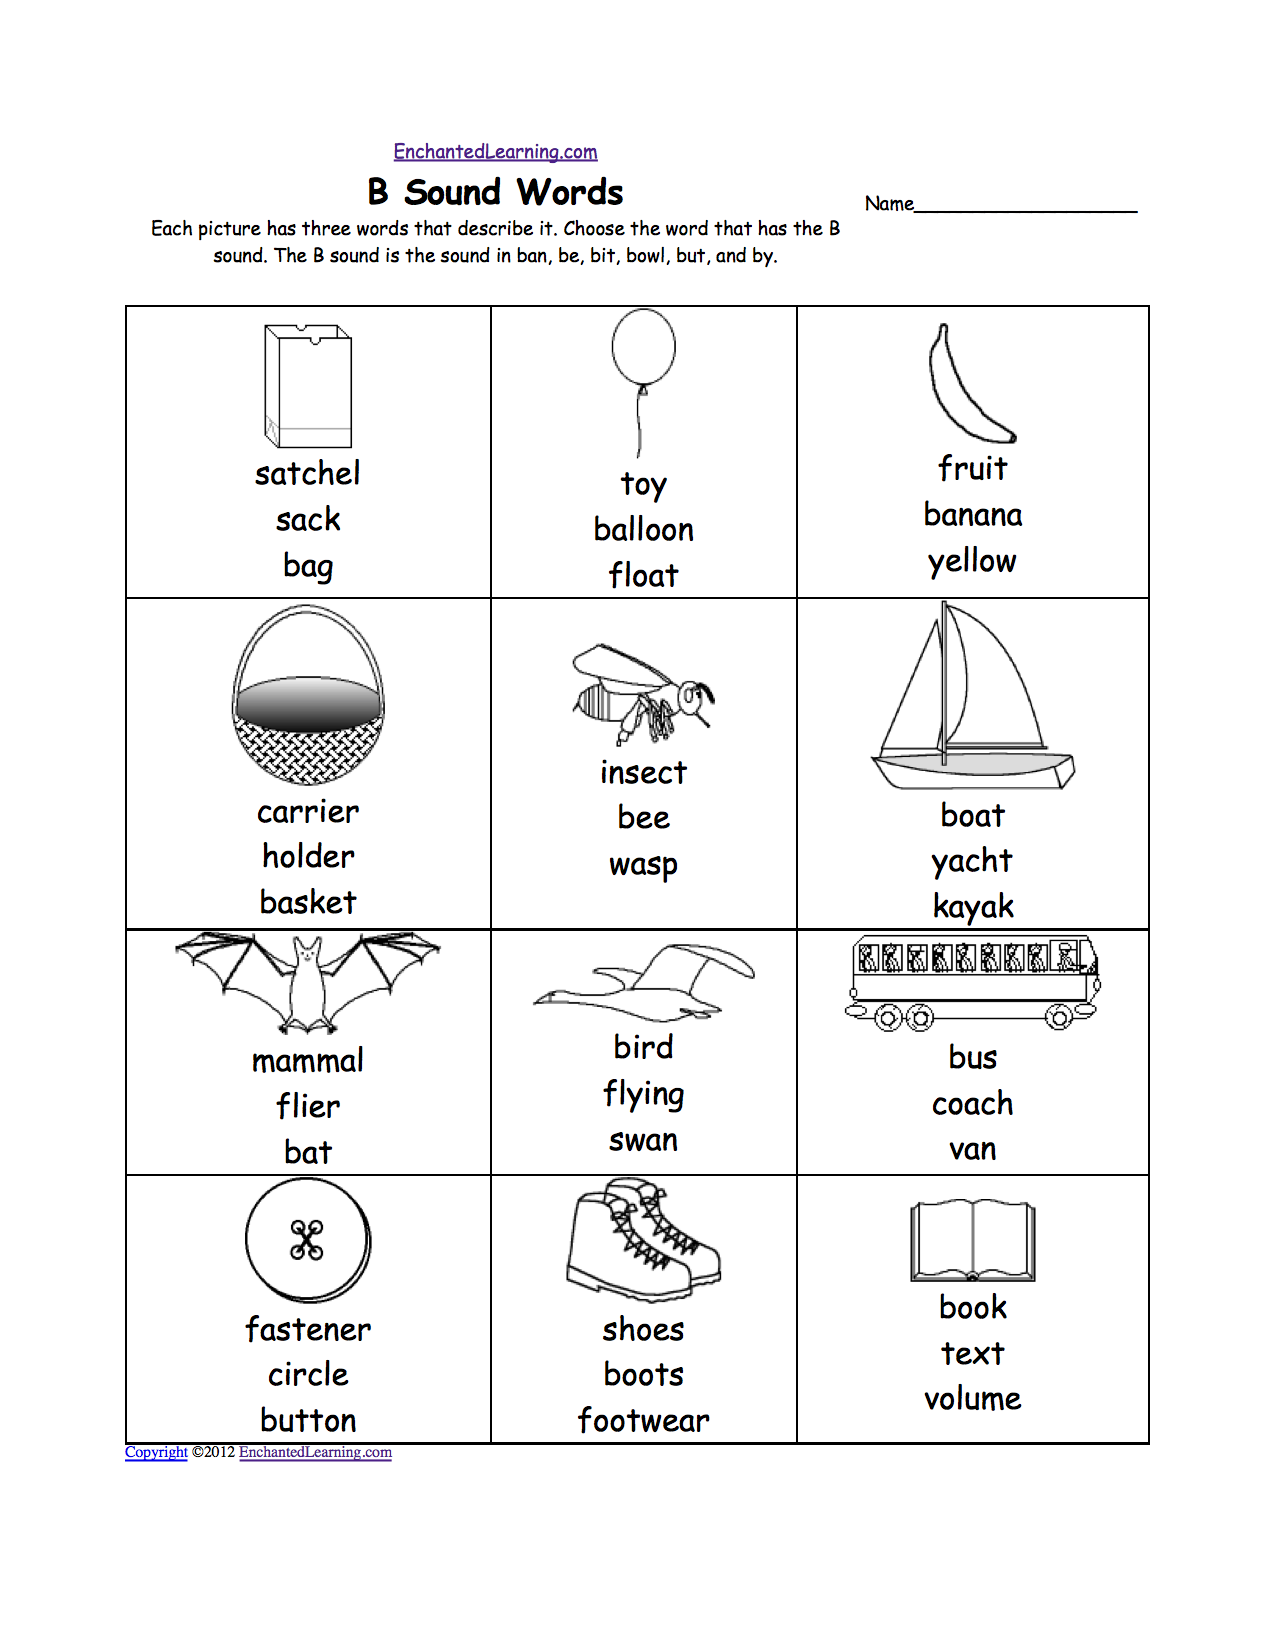 Aldiablosus  Pleasant Phonics Worksheets Multiple Choice Worksheets To Print  With Inspiring Quotbquot Sound Phonics Worksheet Multiple Choice Each Picture Has Three Words That Describe It Choose The Word That Has A Quotbquot Sound The Quotbquot Sound Is The Sound  With Astonishing Silent Consonants Worksheets Also Pemdas Worksheet With Answers In Addition Spelling Worksheet Creator And Worksheet For Math As Well As Long A Worksheets First Grade Additionally Pronouns Worksheet Rd Grade From Enchantedlearningcom With Aldiablosus  Inspiring Phonics Worksheets Multiple Choice Worksheets To Print  With Astonishing Quotbquot Sound Phonics Worksheet Multiple Choice Each Picture Has Three Words That Describe It Choose The Word That Has A Quotbquot Sound The Quotbquot Sound Is The Sound  And Pleasant Silent Consonants Worksheets Also Pemdas Worksheet With Answers In Addition Spelling Worksheet Creator From Enchantedlearningcom